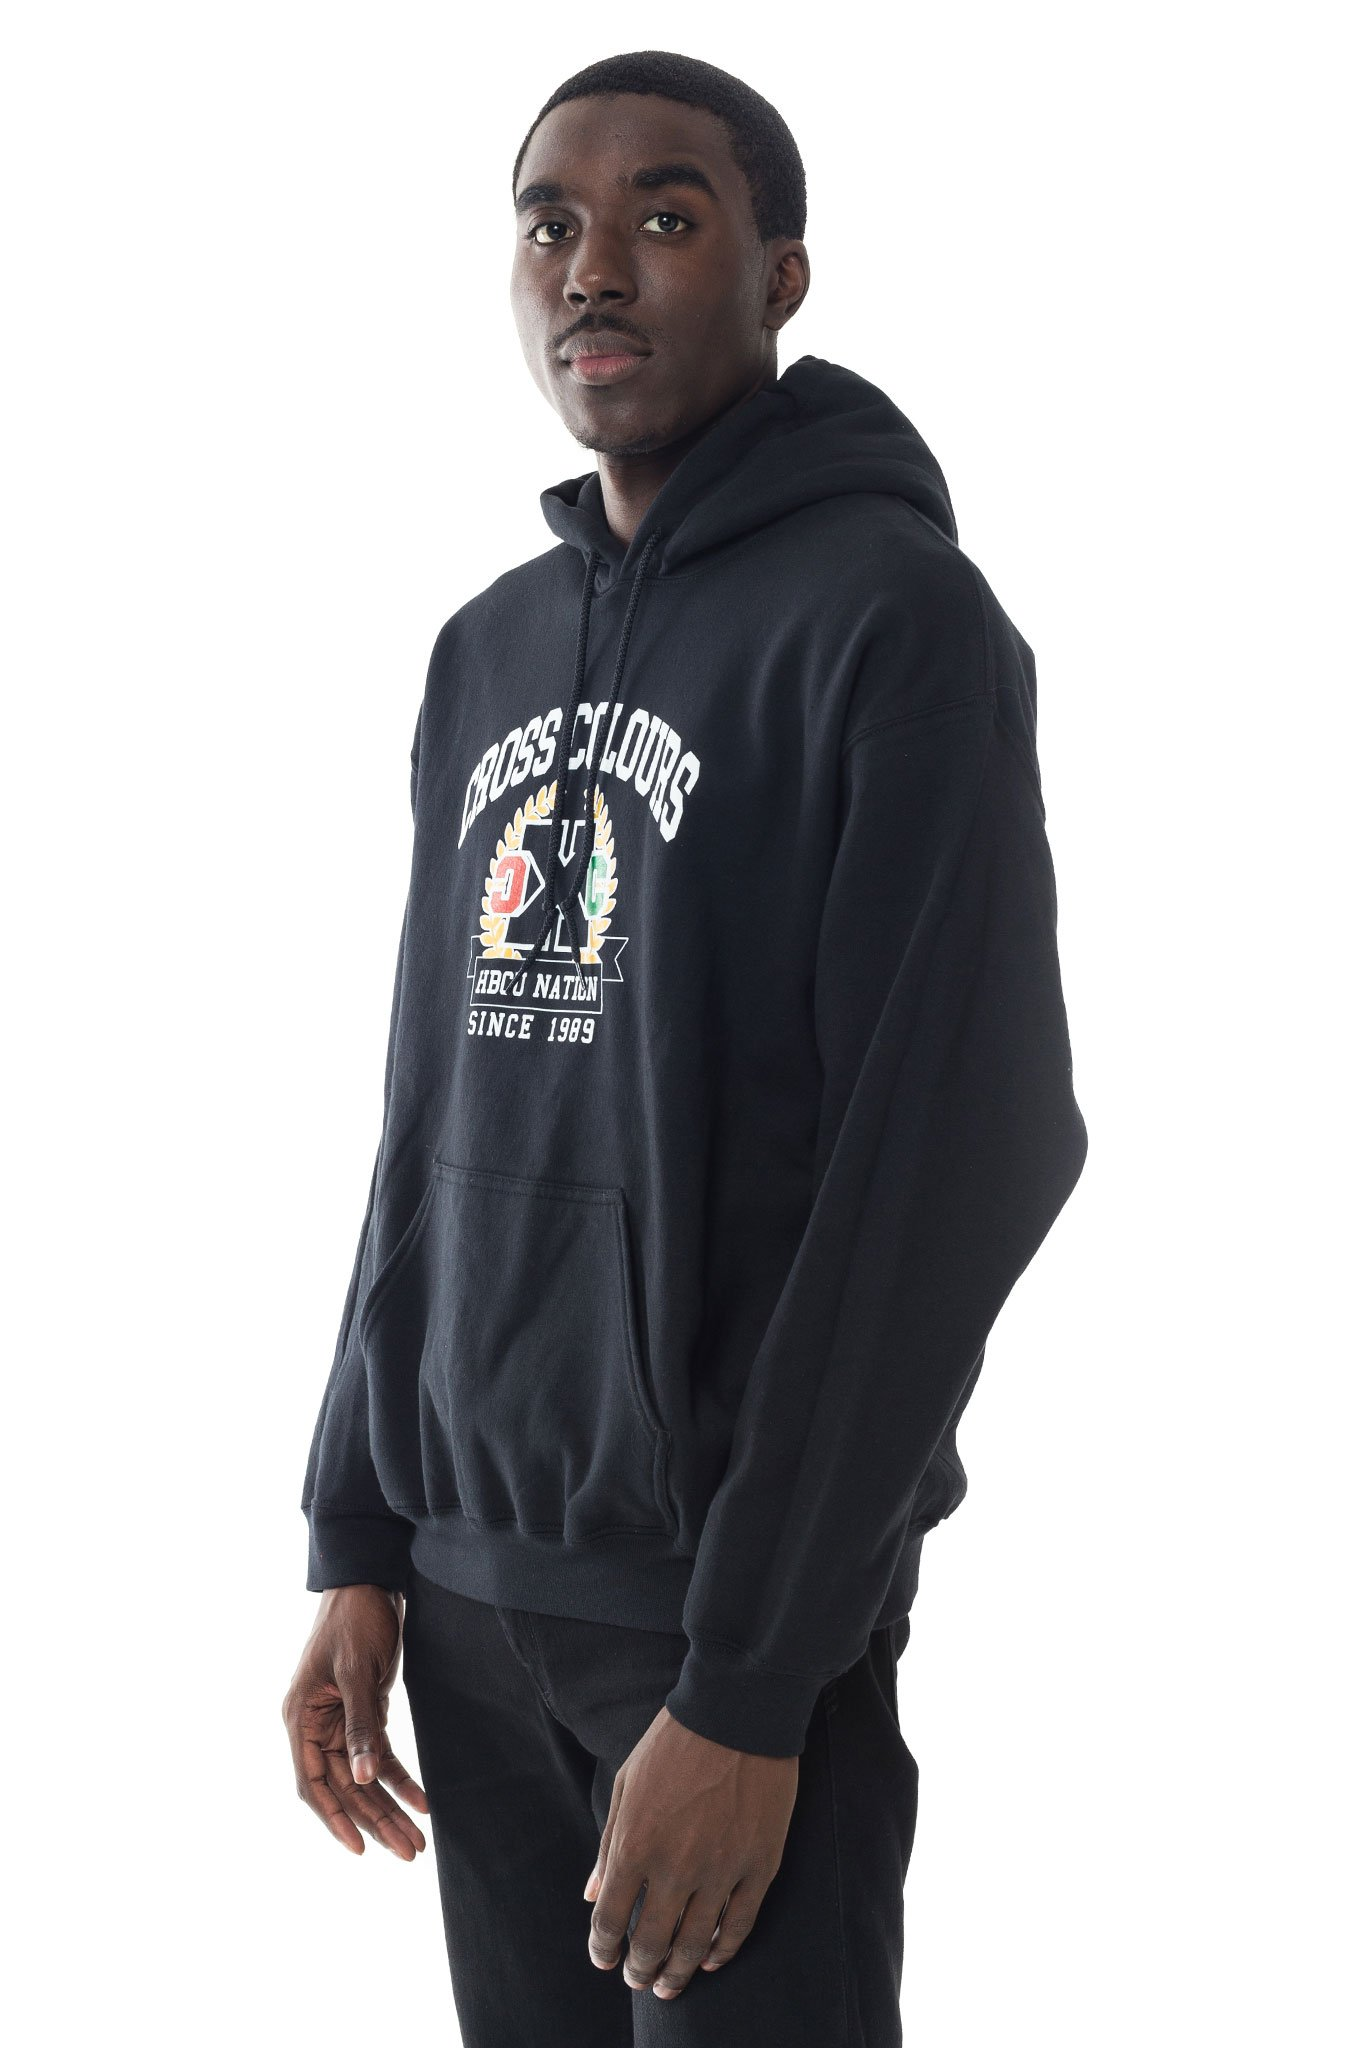 Cross_Colours_HBCU_Nation_Hoodie__Black